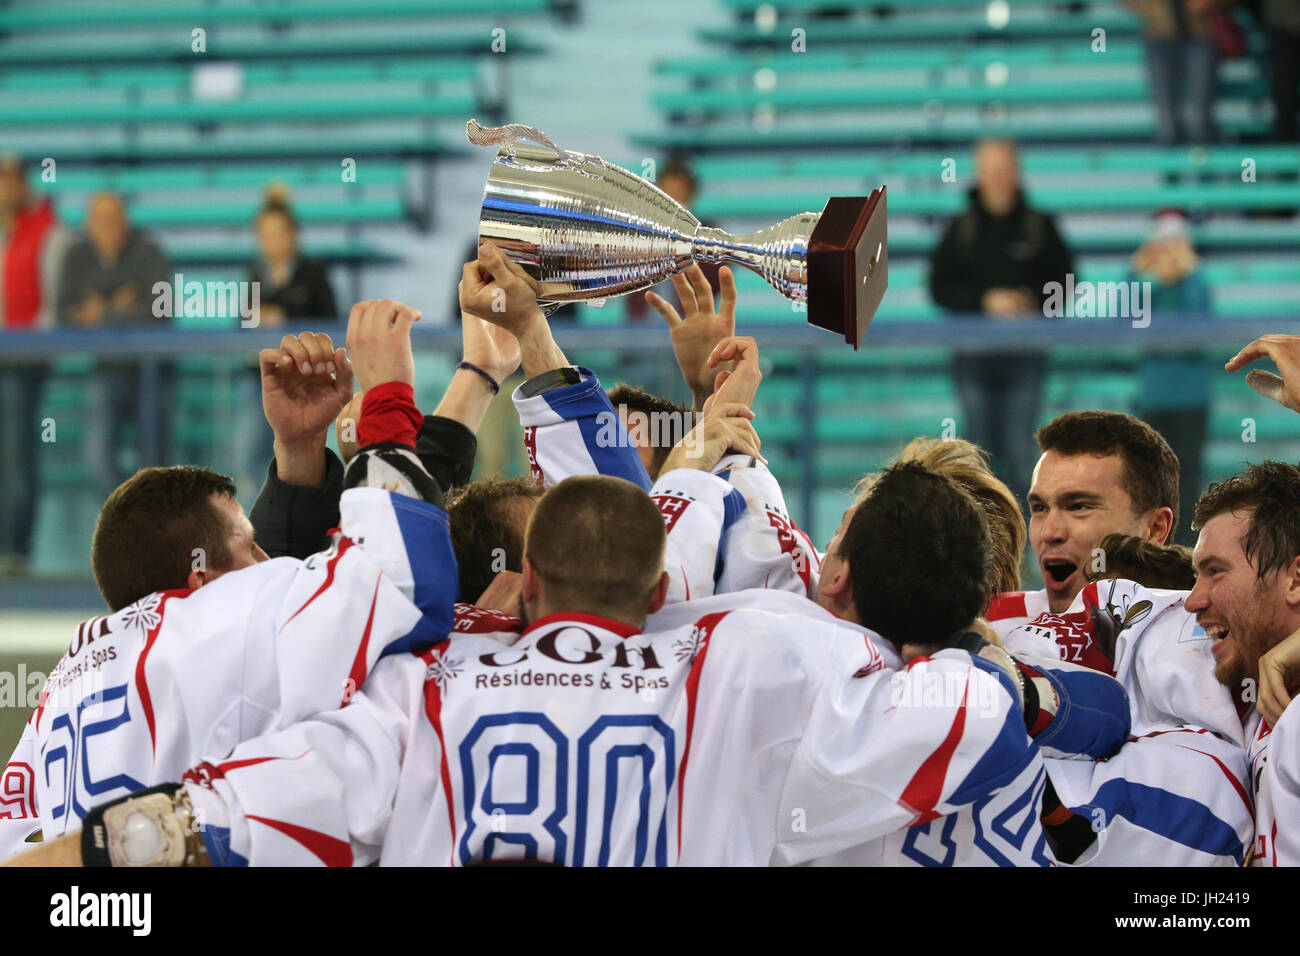 Ice Hockey match.  Hockey team with cup.  France. - Stock Image